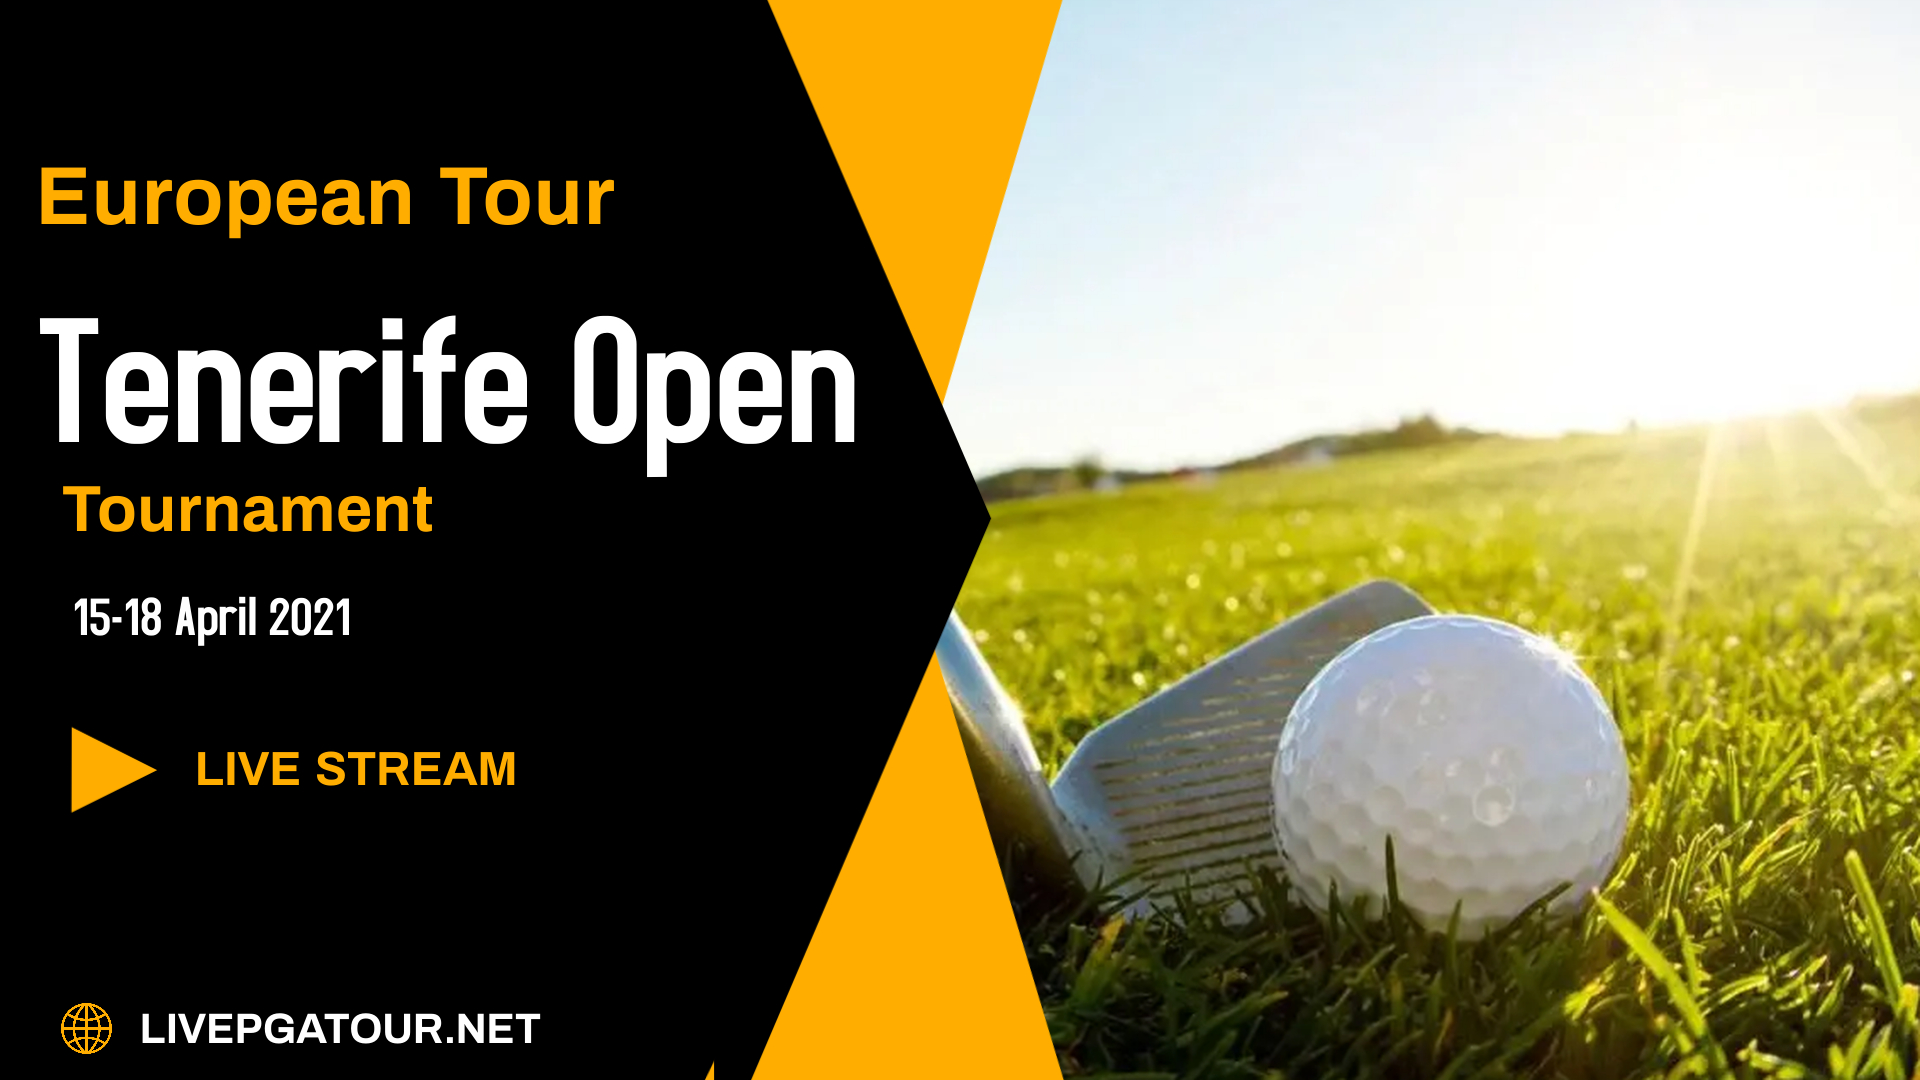 Tenerife Open Live Stream 2021: European Tour Day 4